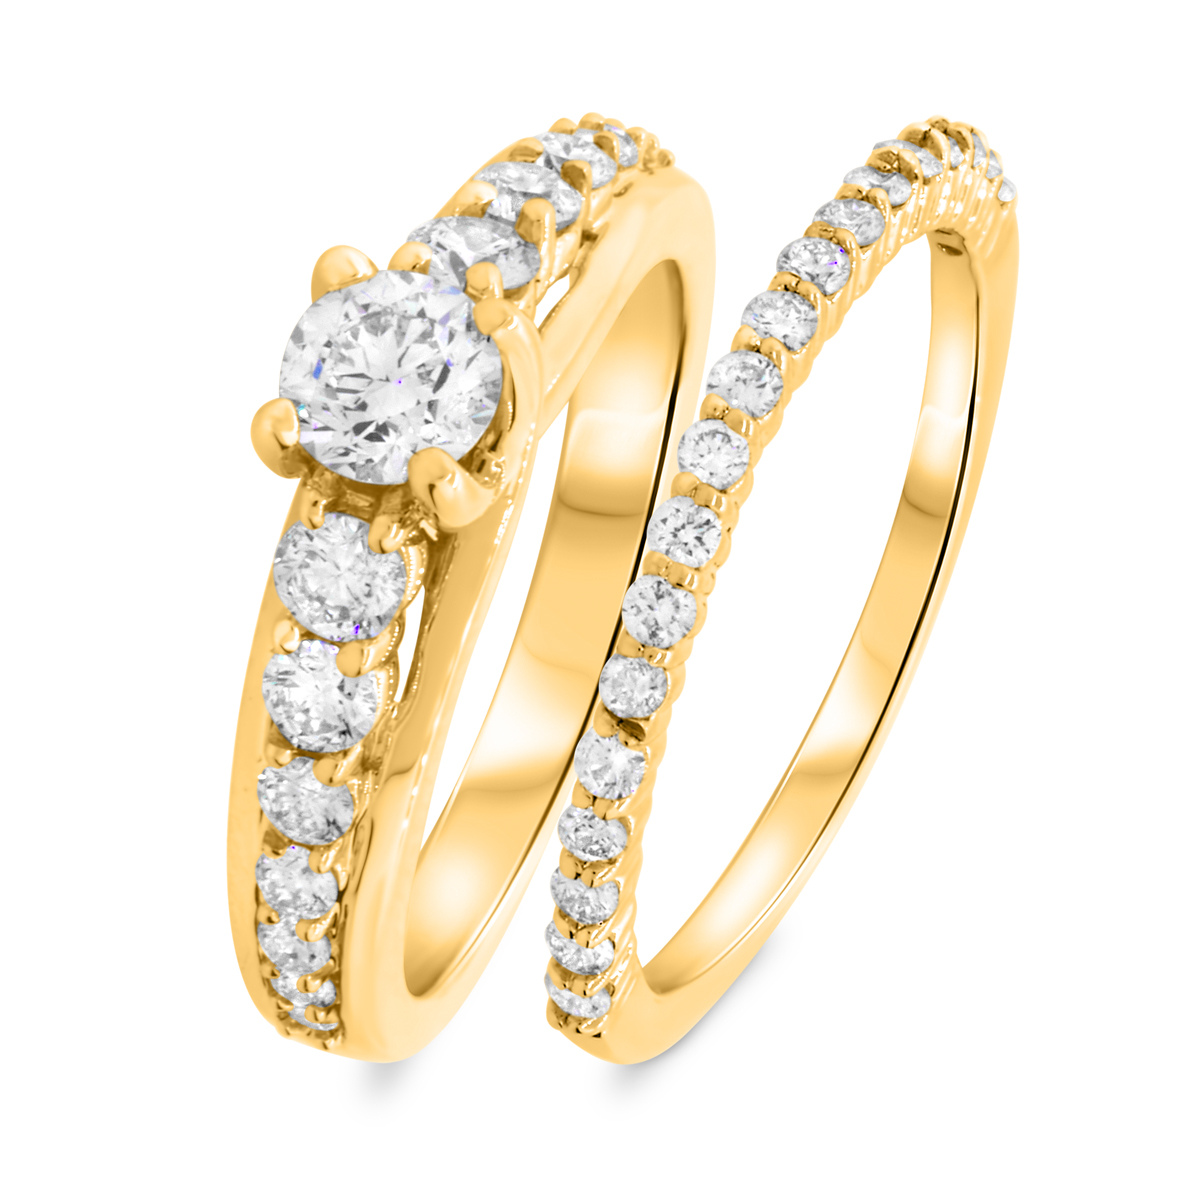 1 1/3 CT. T.W. Round Cut Diamond Ladies Bridal Wedding Ring Set 10K Yellow Gold